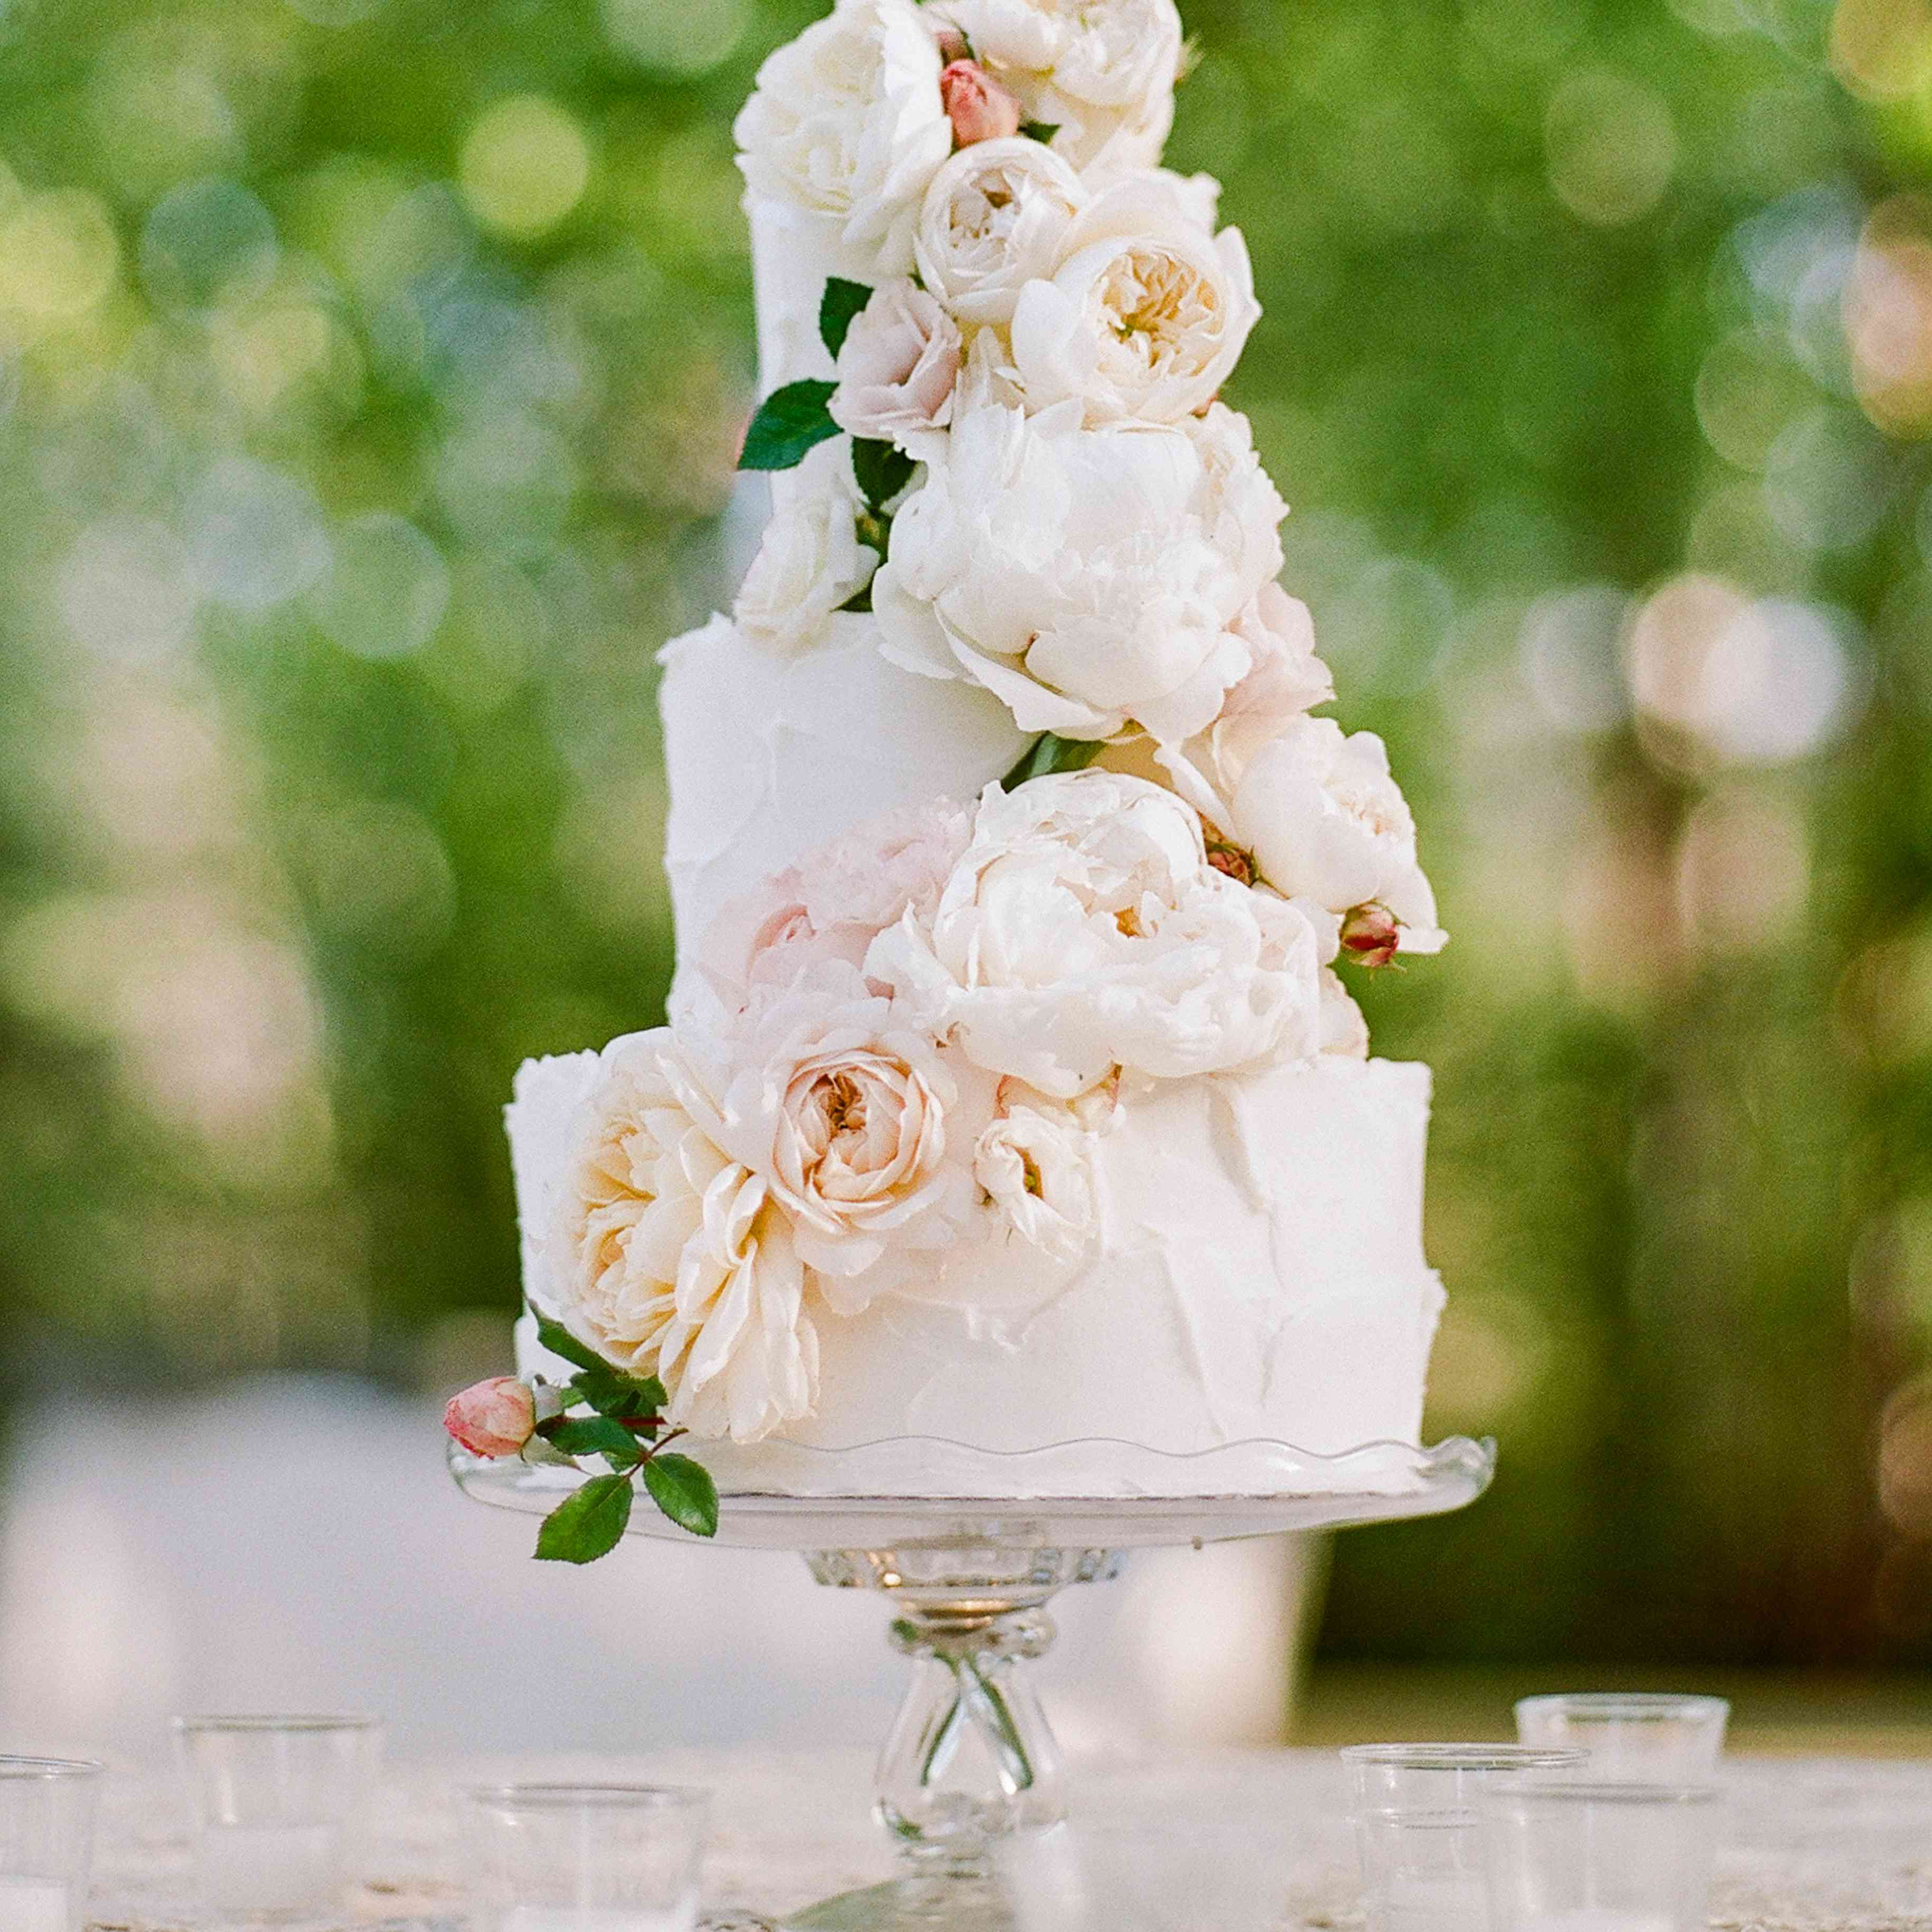 A white wedding cake with fresh flowers